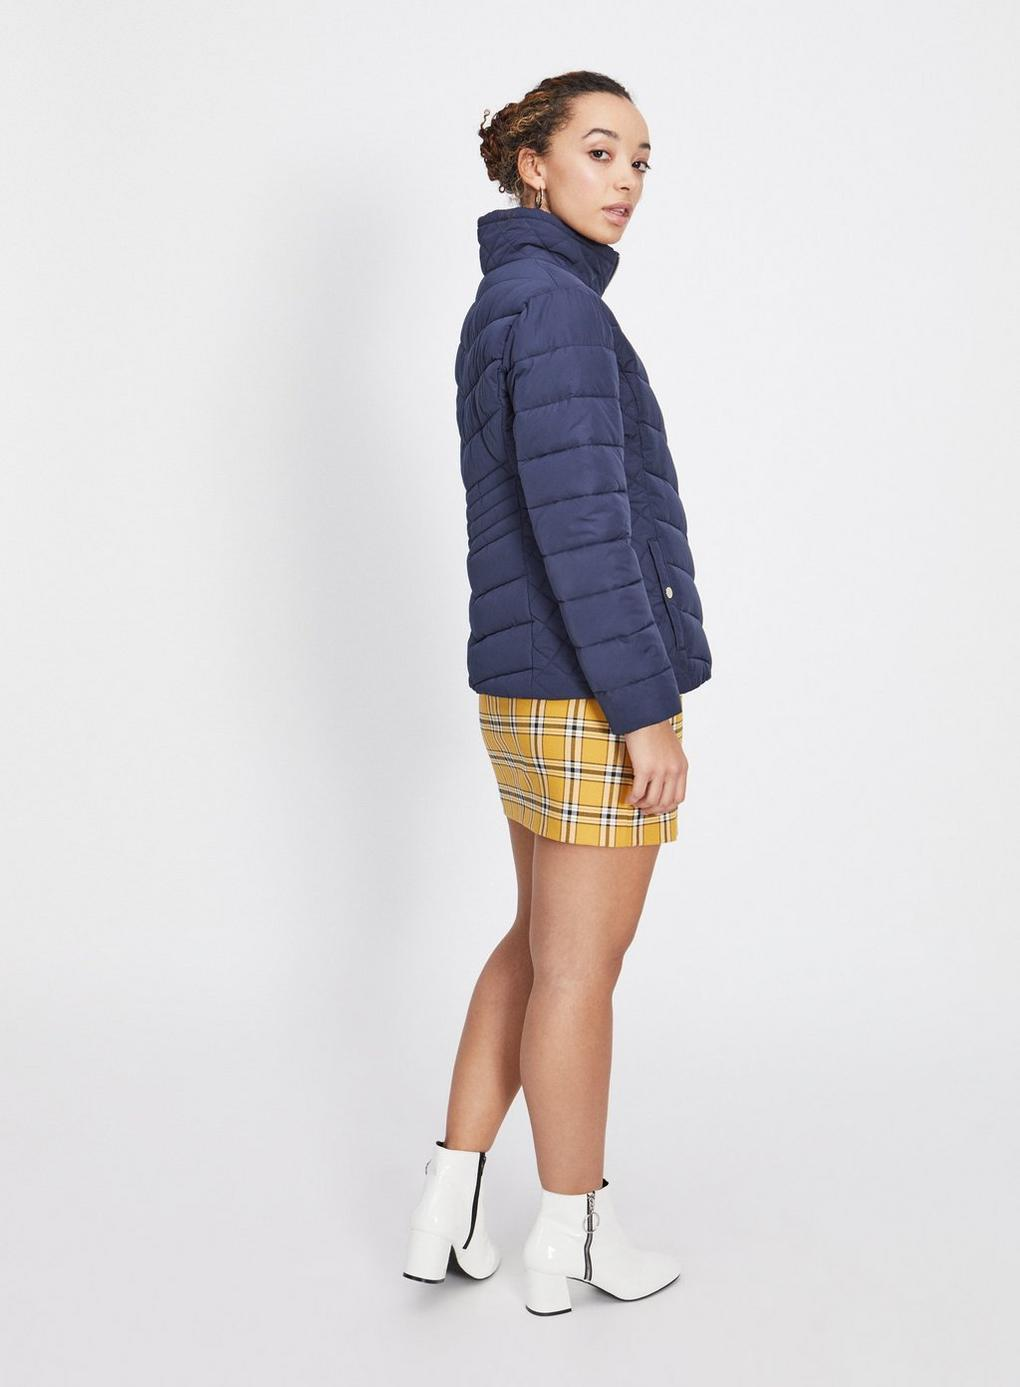 60bbd5219c3 Miss Selfridge - Blue Petite Navy Puffer Coat - Lyst. View fullscreen